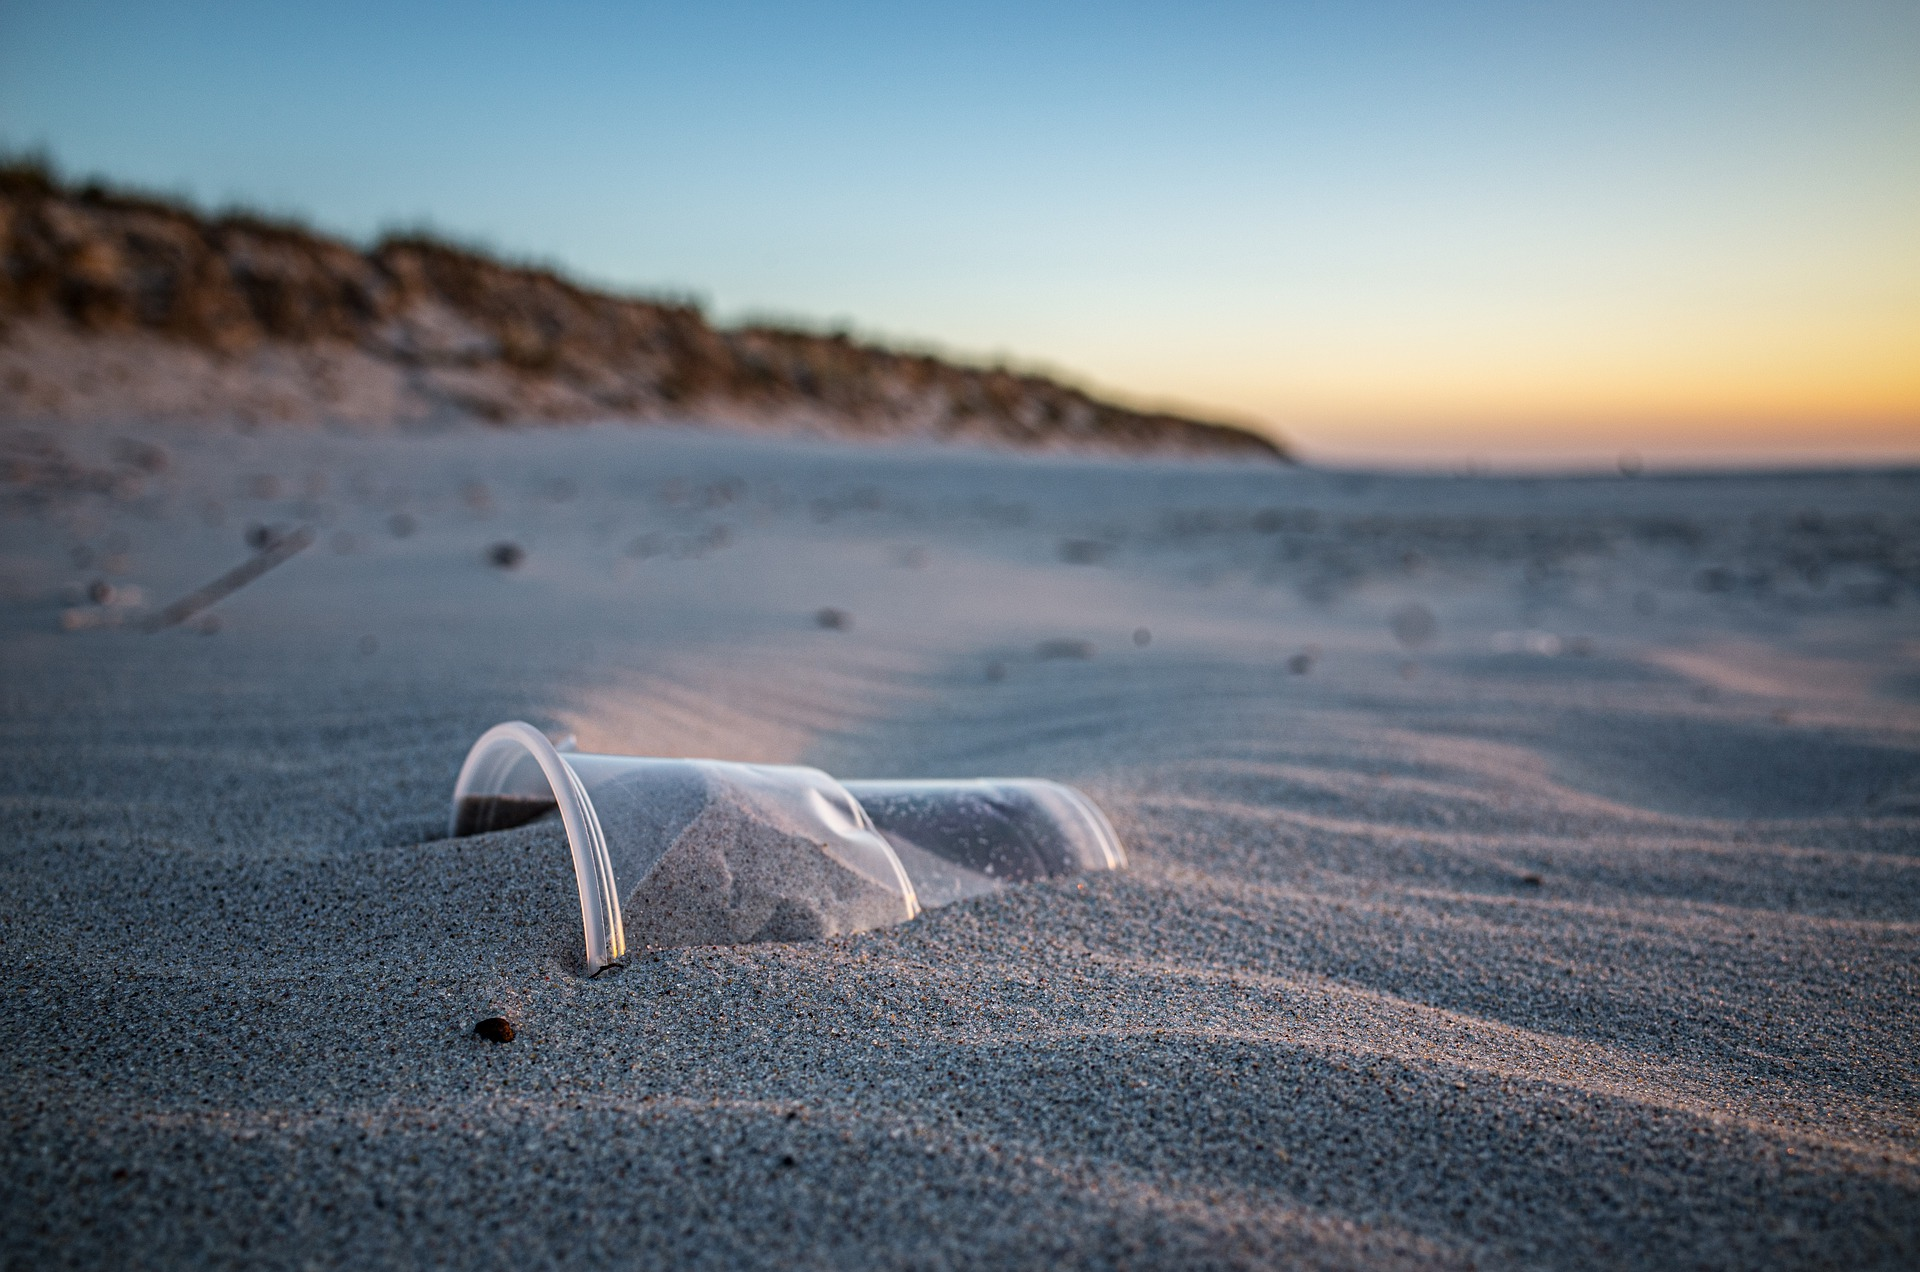 a plastic bottle on the beach